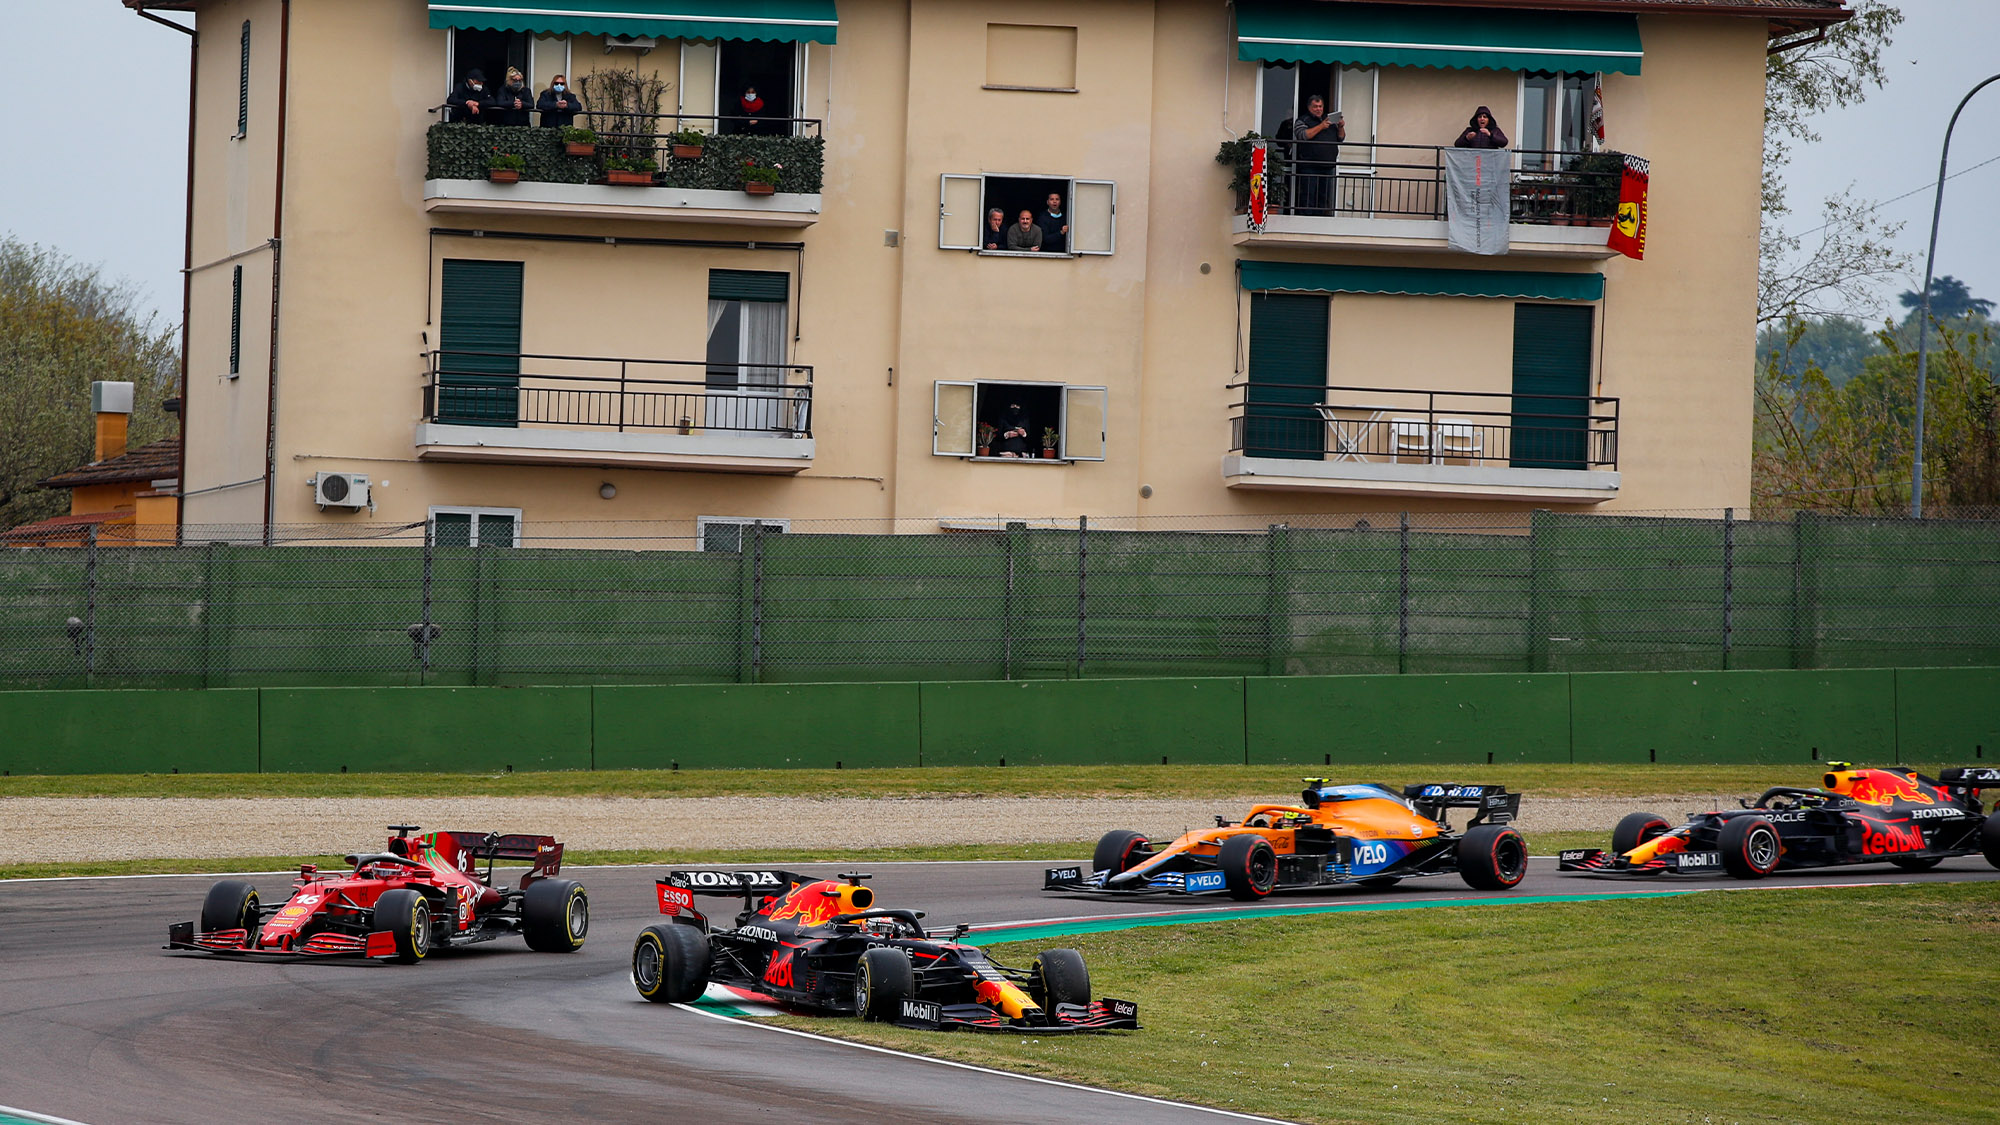 Max Verstappen runs onto the grass at the restart of the 2021 Emilia Romagna Grand Prix